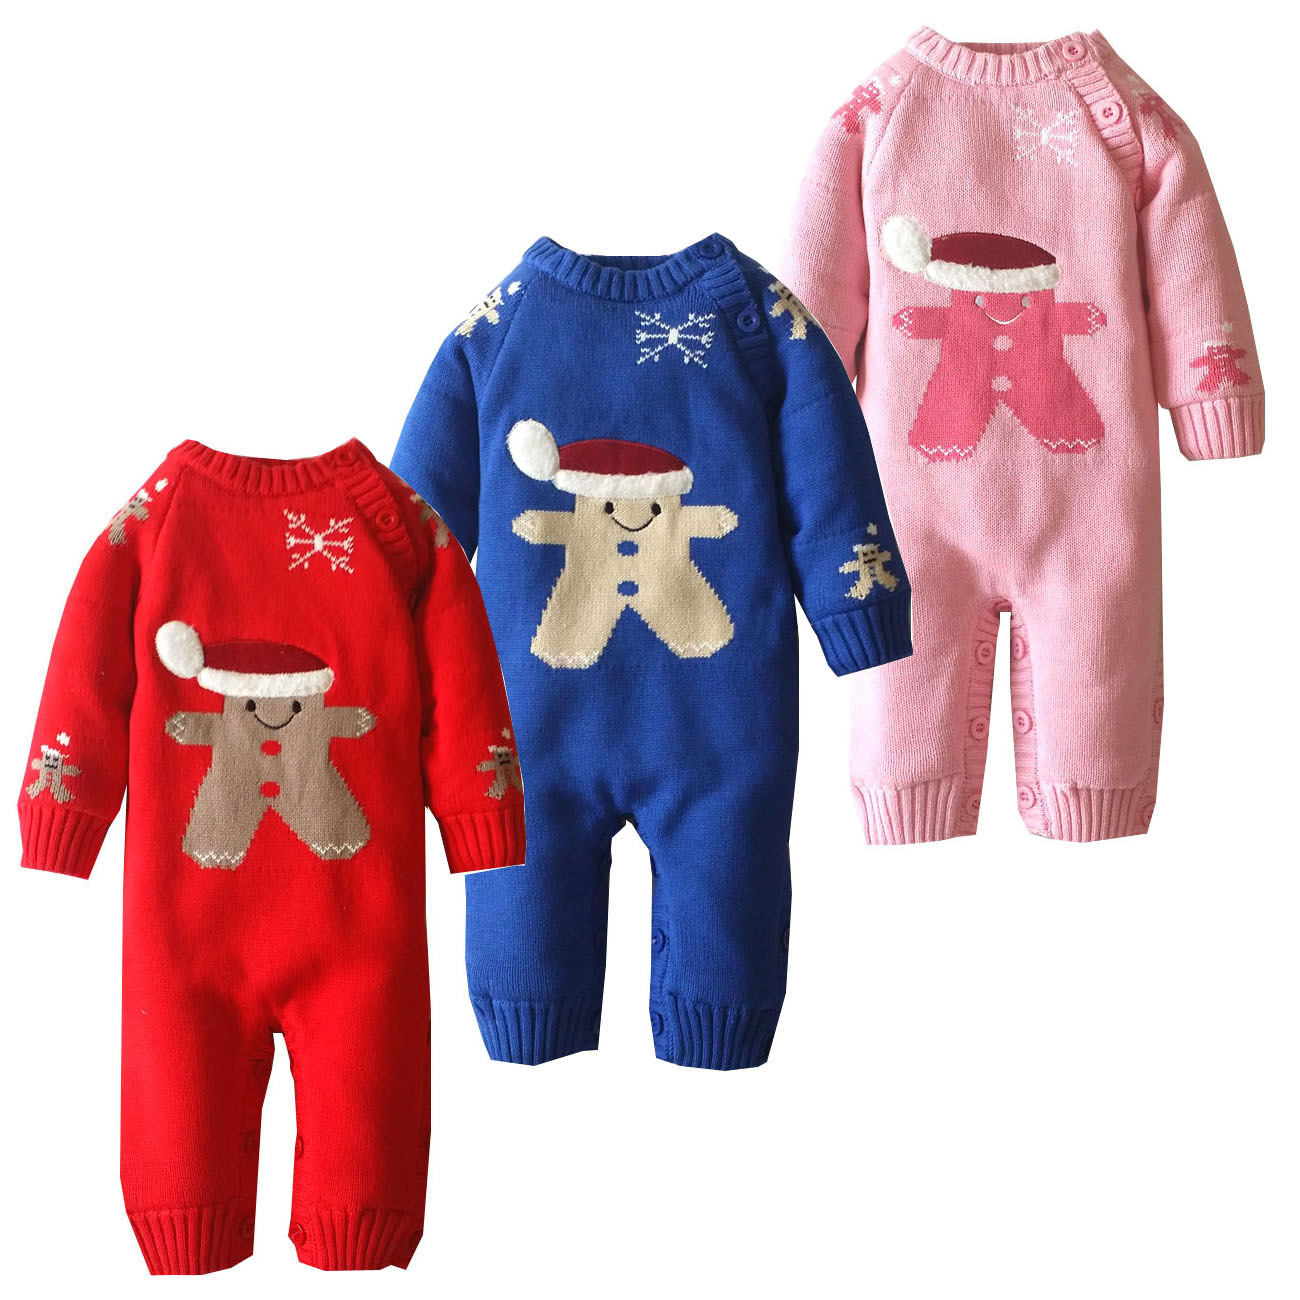 Chrismas Santa Claus Baby Rompers Pajamas Newborn Clothes Cartoon Infant Fleece Long Sleeve Jumpsuits Boy Girl Warm Winter Wear newborn baby rompers autumn winter package feet baby clothes polar fleece infant overalls baby boy girl jumpsuits clothing set